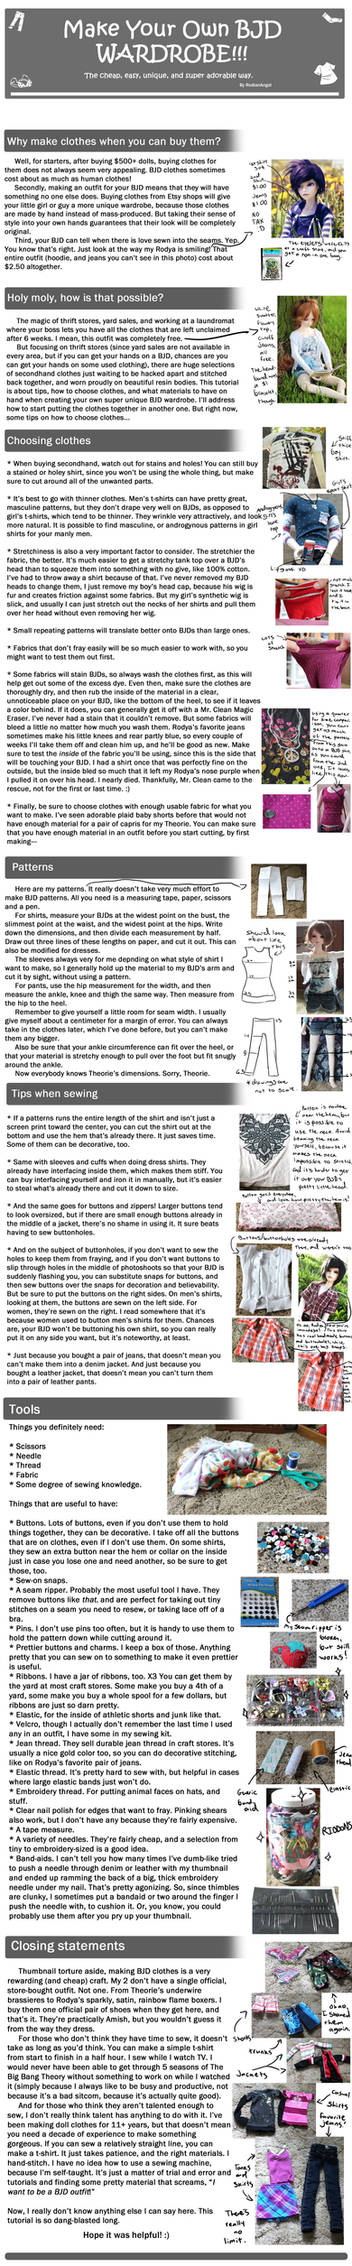 How to Make Your Own BJD Wardrobe!